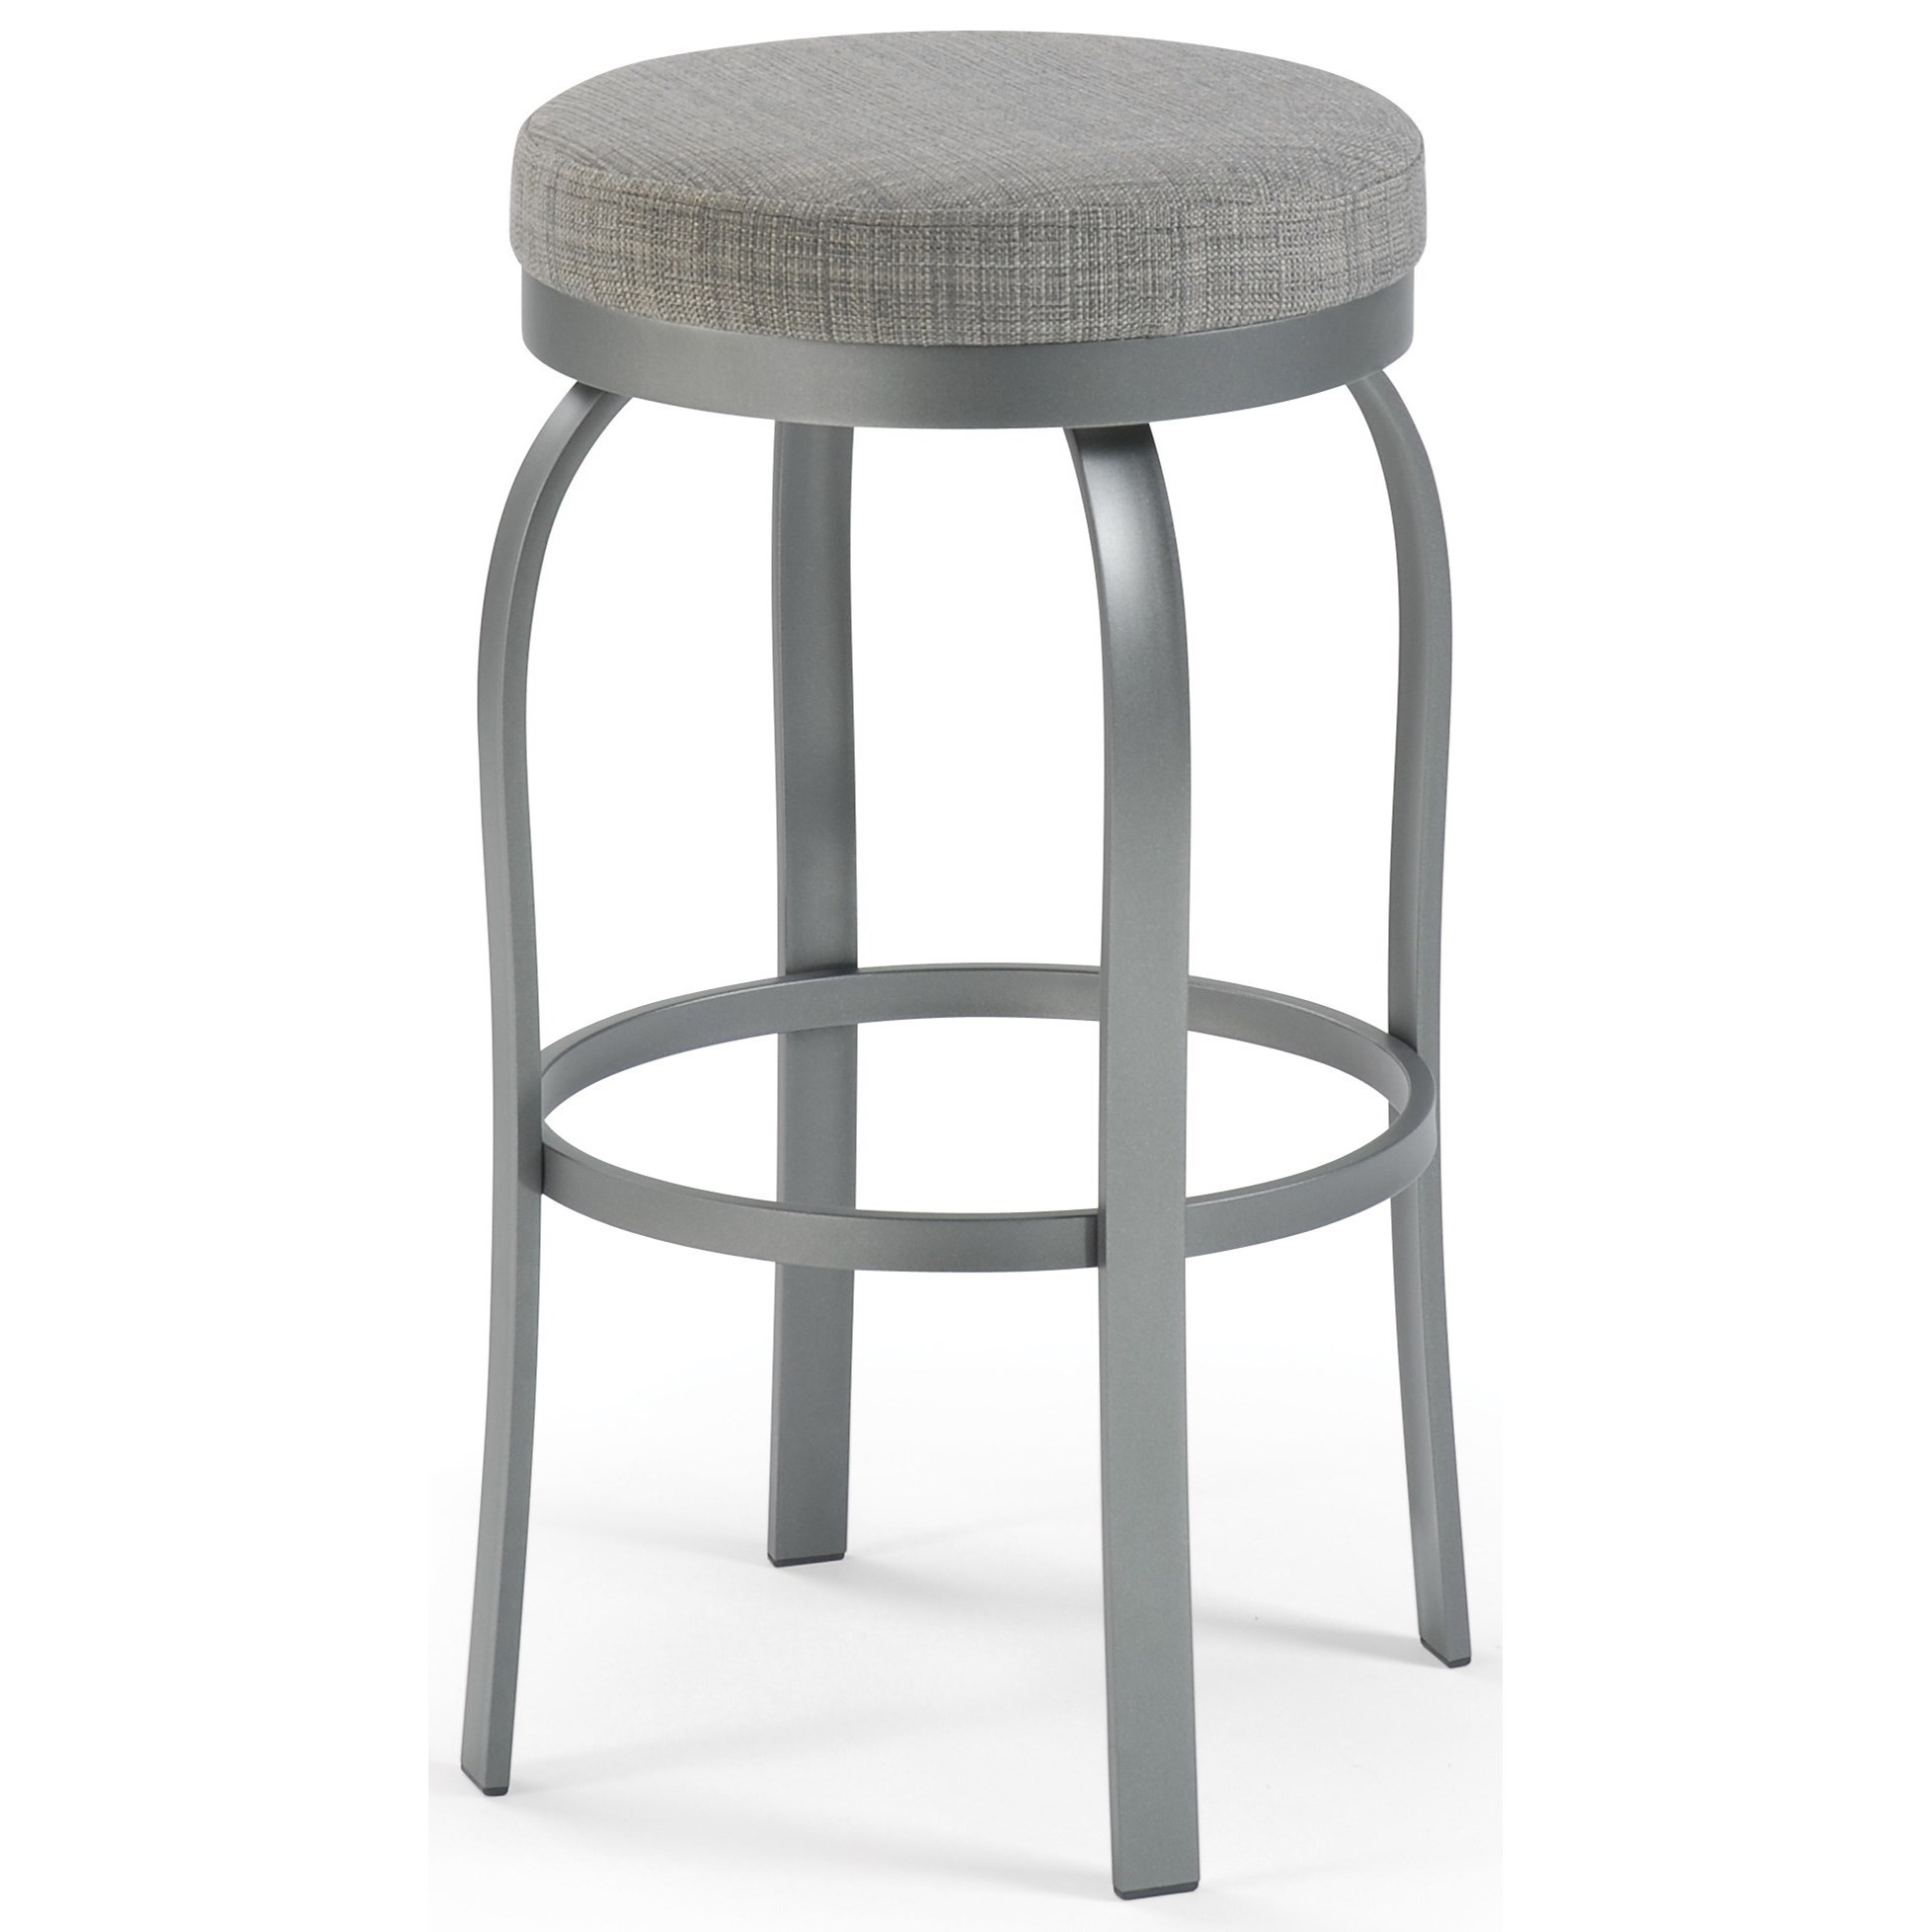 Contemporary Seating Truffle Bar Stool by Trica at Jordan's Home Furnishings